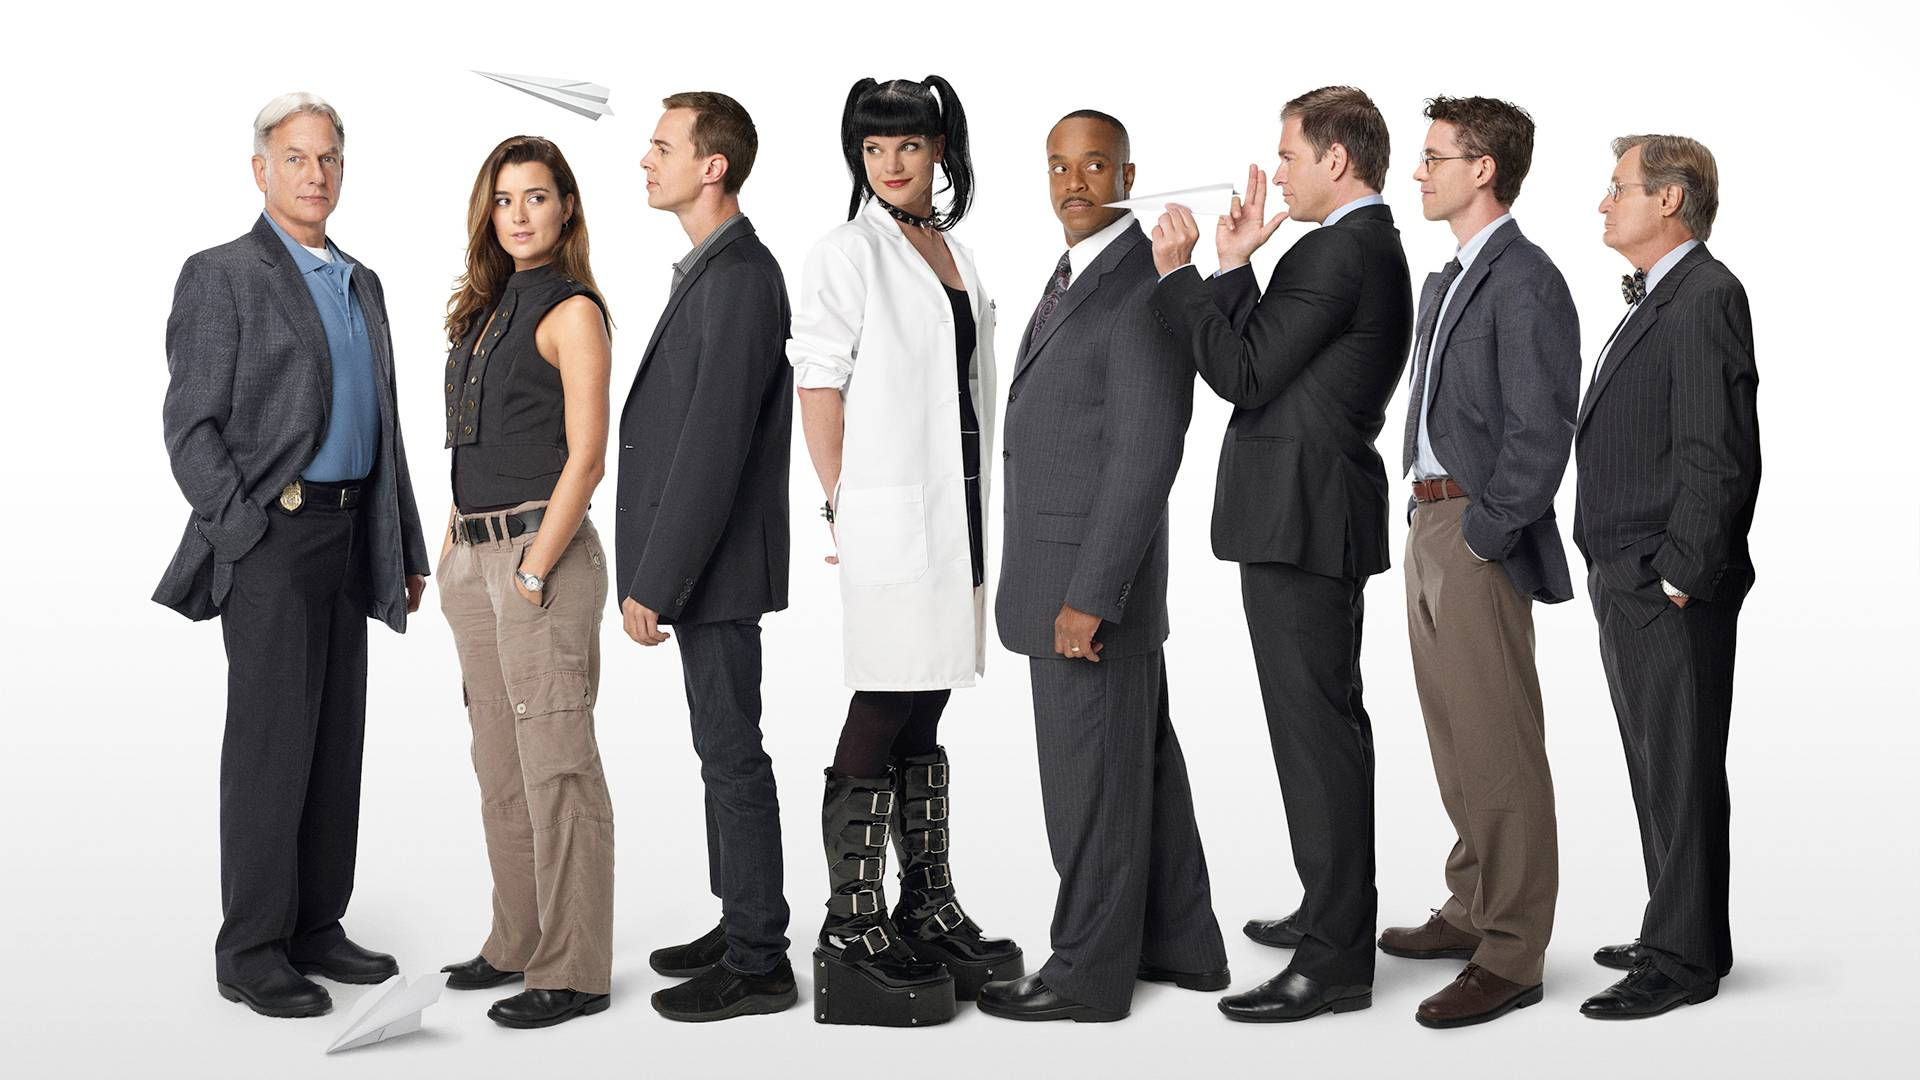 1920x1080 Ncis Wallpapers, 100% Quality Ncis HD Pictures #MMK86, 100% Quality ...